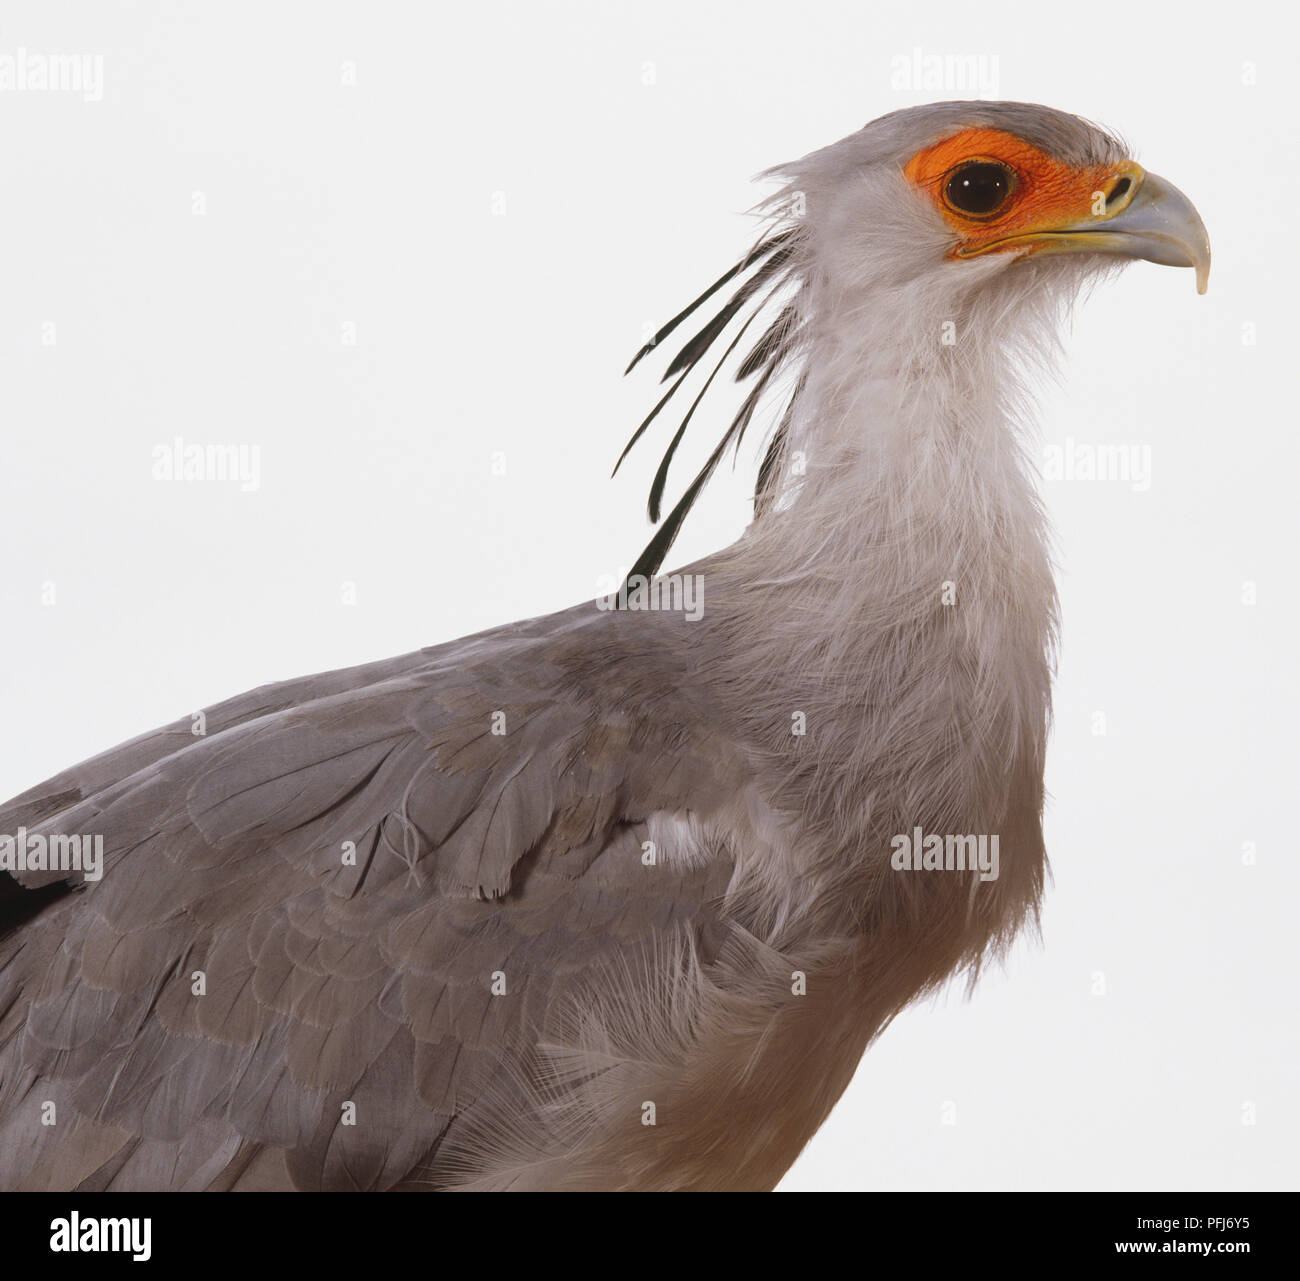 Secretary Bird (Sagittarius serpentarius), side view Stock Photo